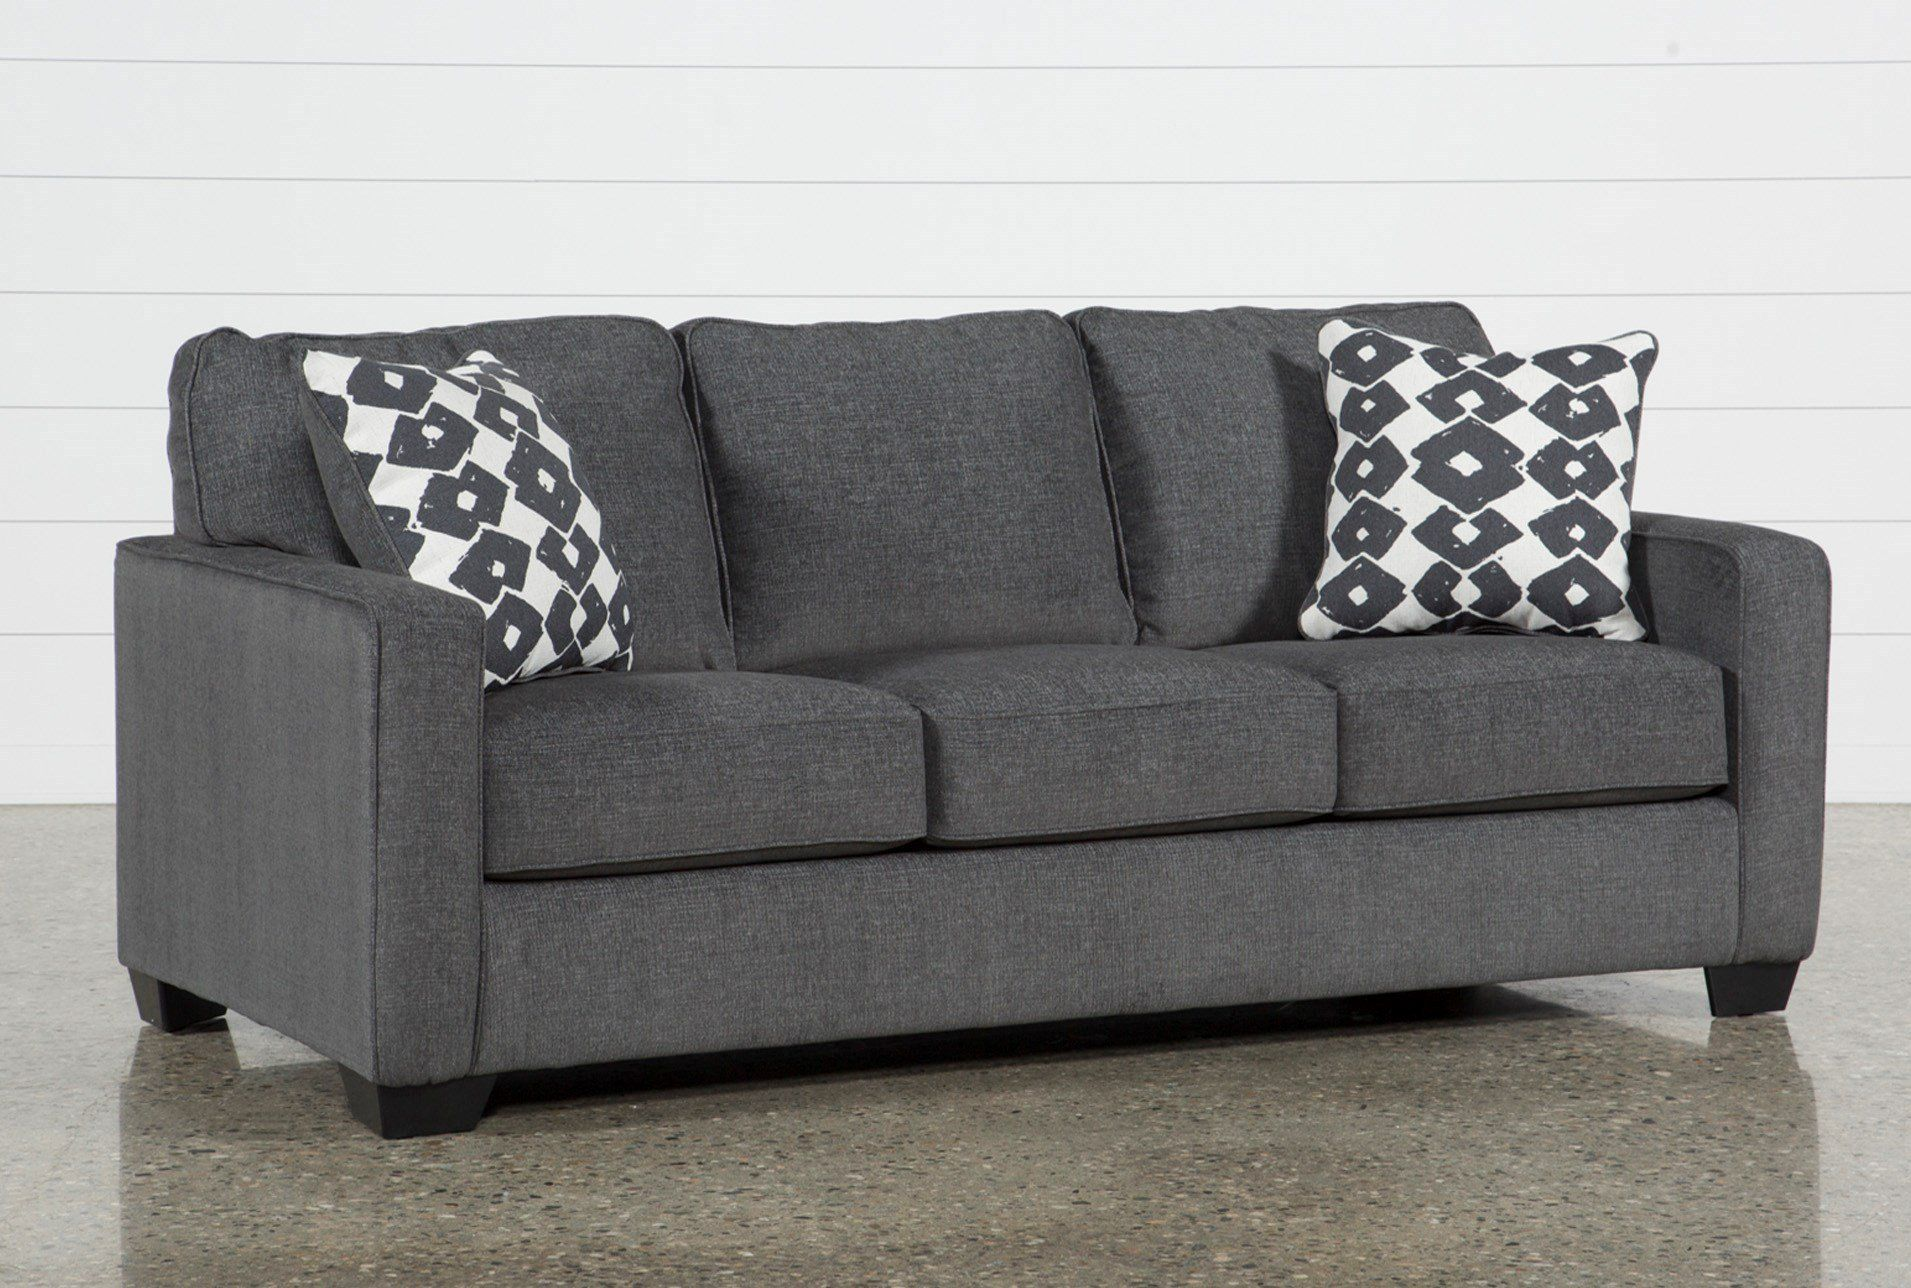 Turdur Queen Sofa Sleeper Queen Sofa Sleeper Living Spaces Sofa Living Room Sofa